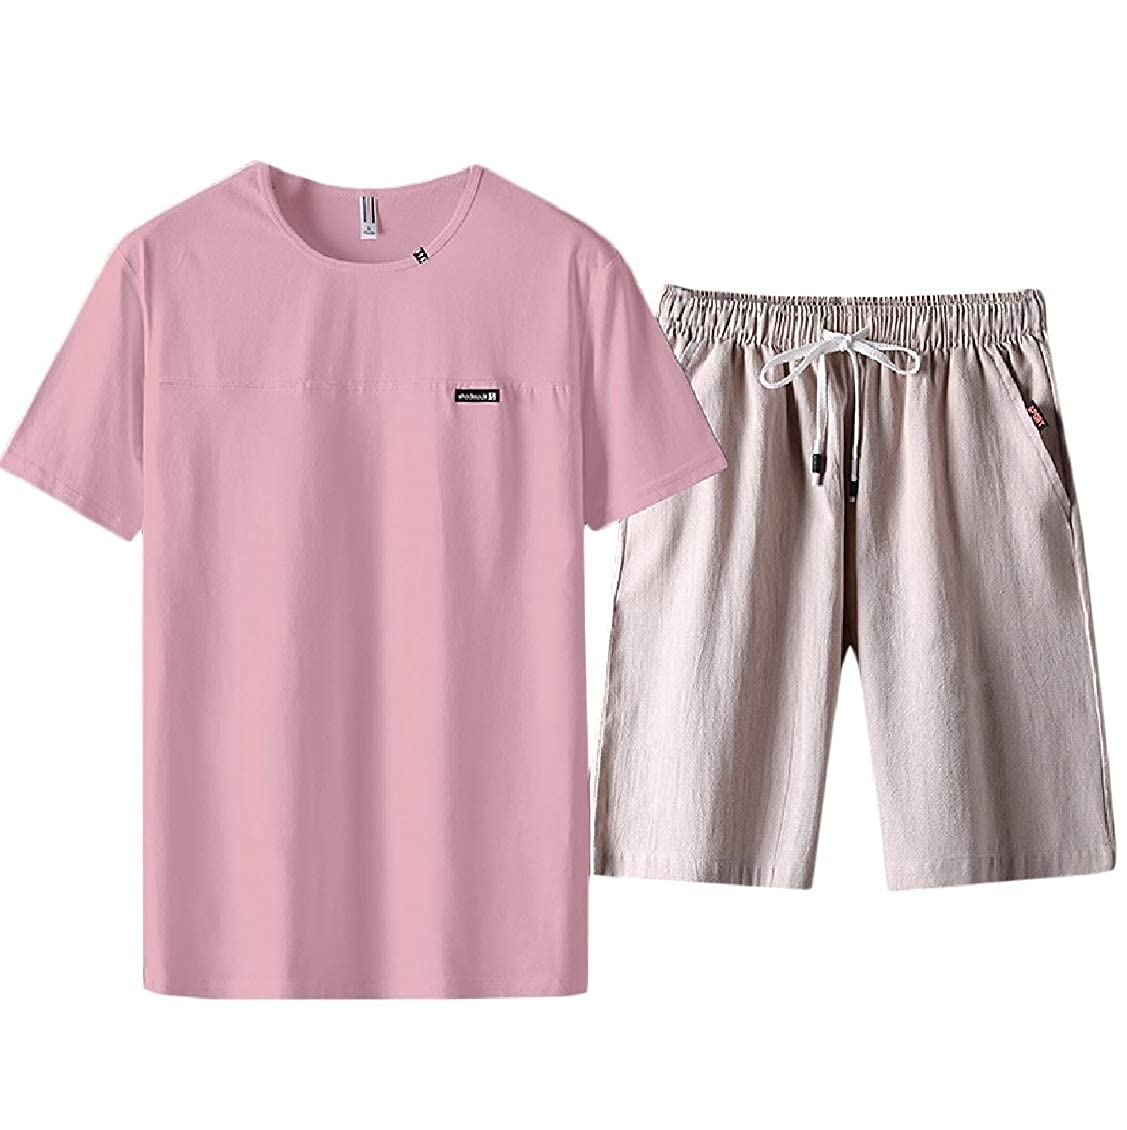 Coolred-Men 2 Piece Short Sleeve Casual Fashional Solid Tracksuit Top /& Bottoms Set